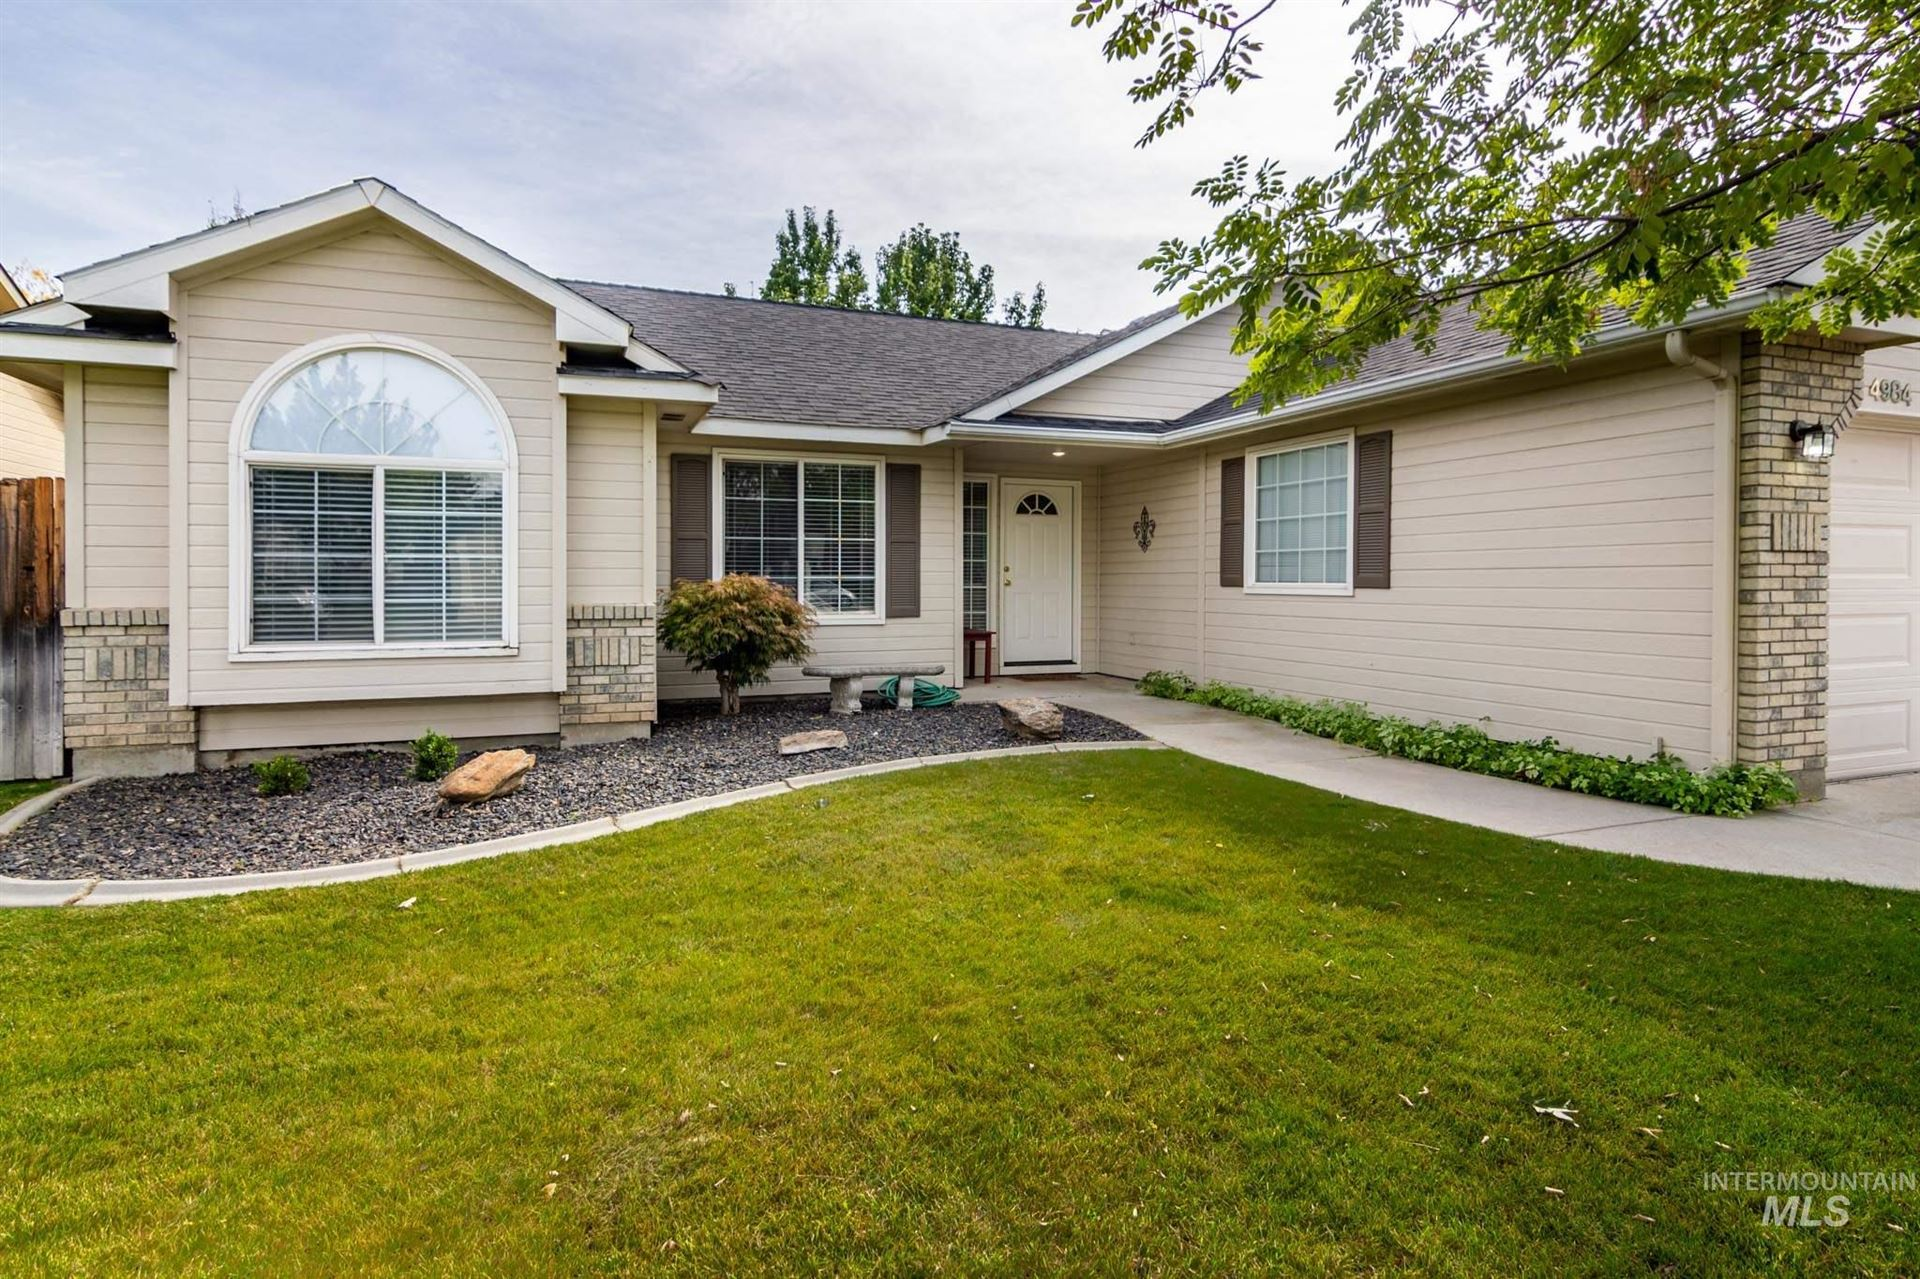 Photo of 4984 Rothmans Ave, Boise, ID 83713 (MLS # 98782193)